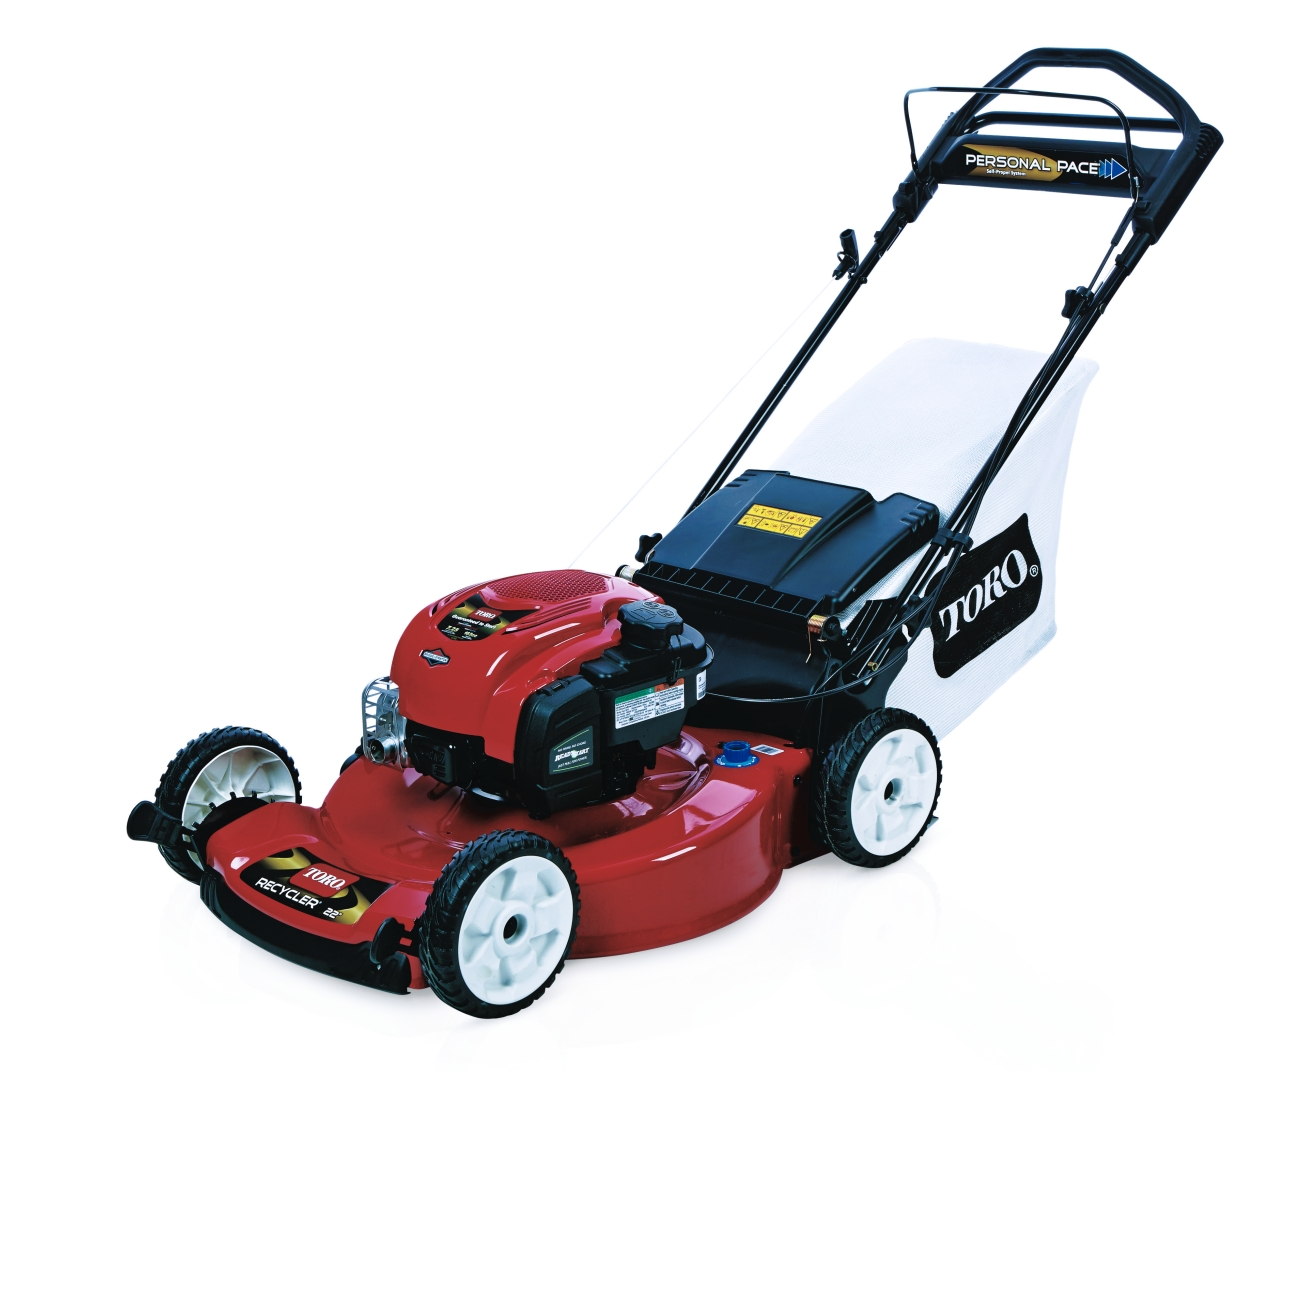 1305x1305 Toro Personal Pace Recycler 22in. Lawn Mower (20332)